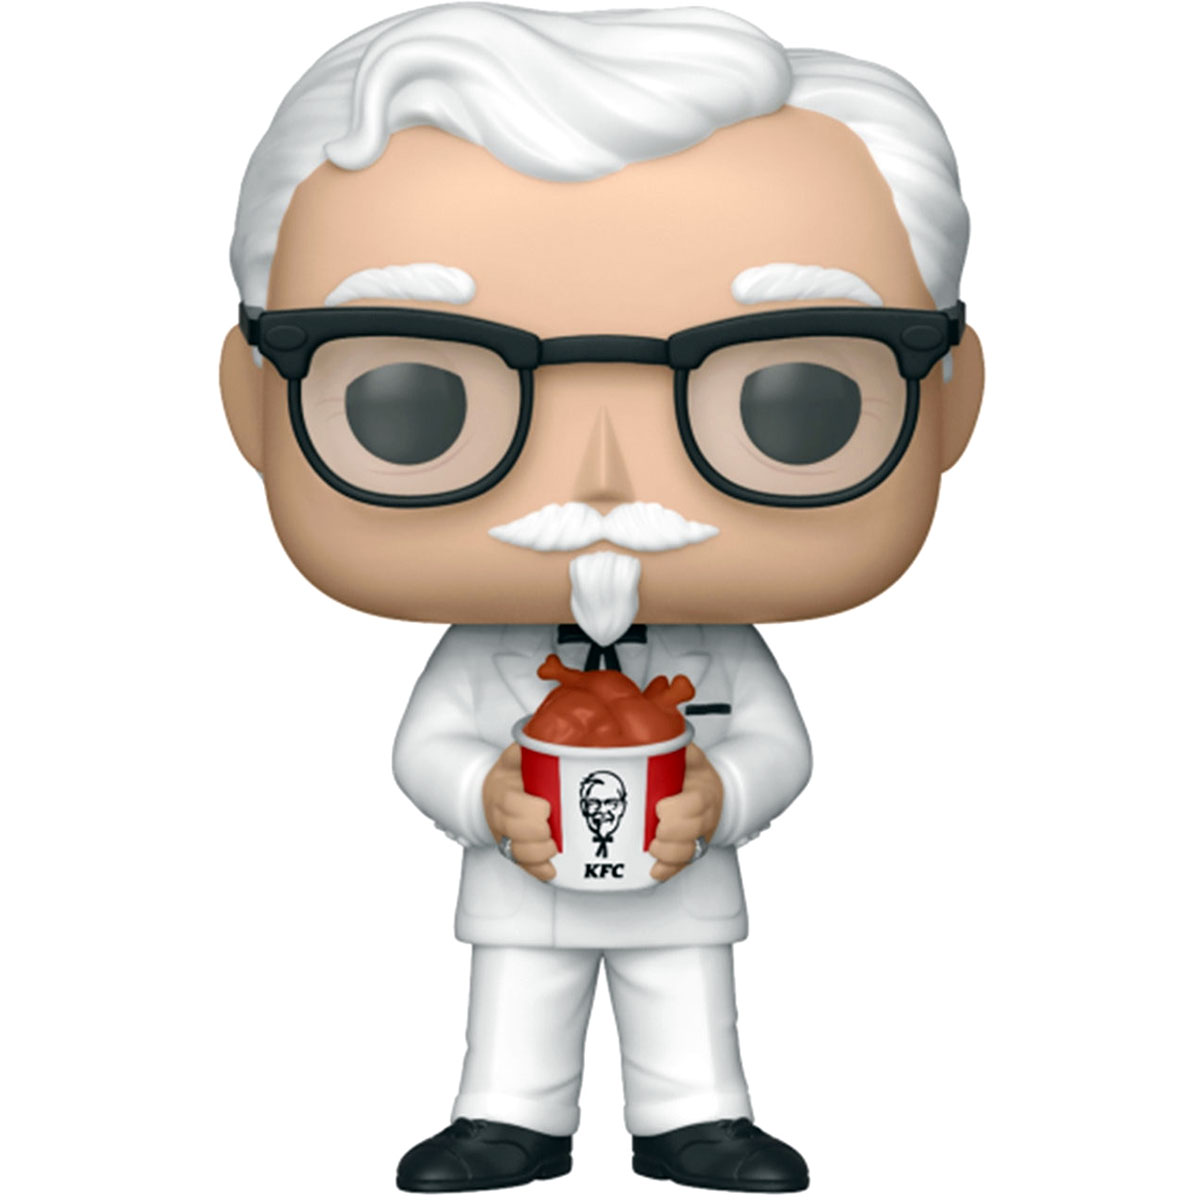 Funko Pop Icons Kfc Colonel Sanders Figure